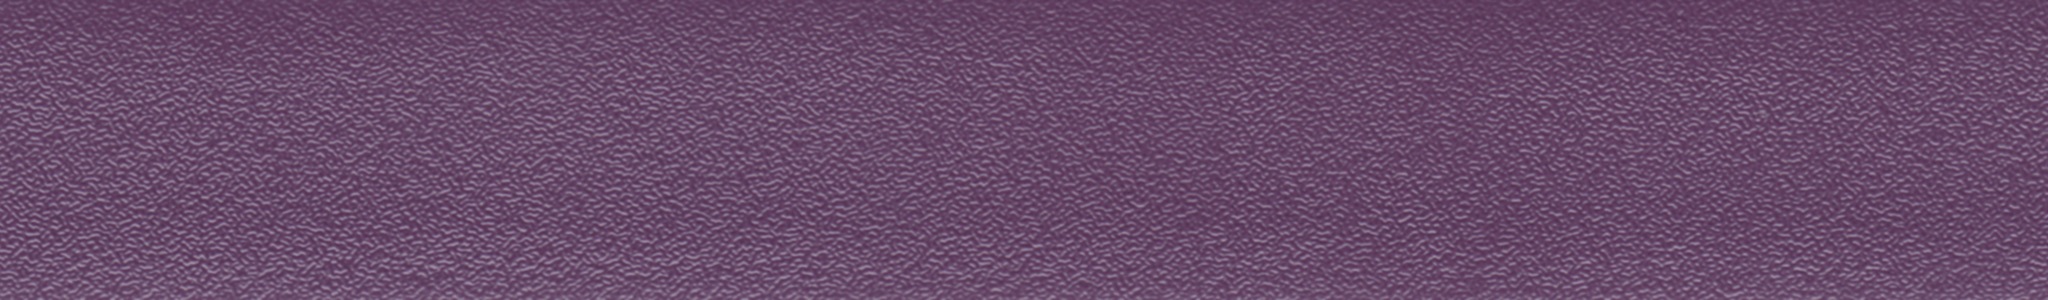 HU 151686 Chant ABS Violet Perle 101